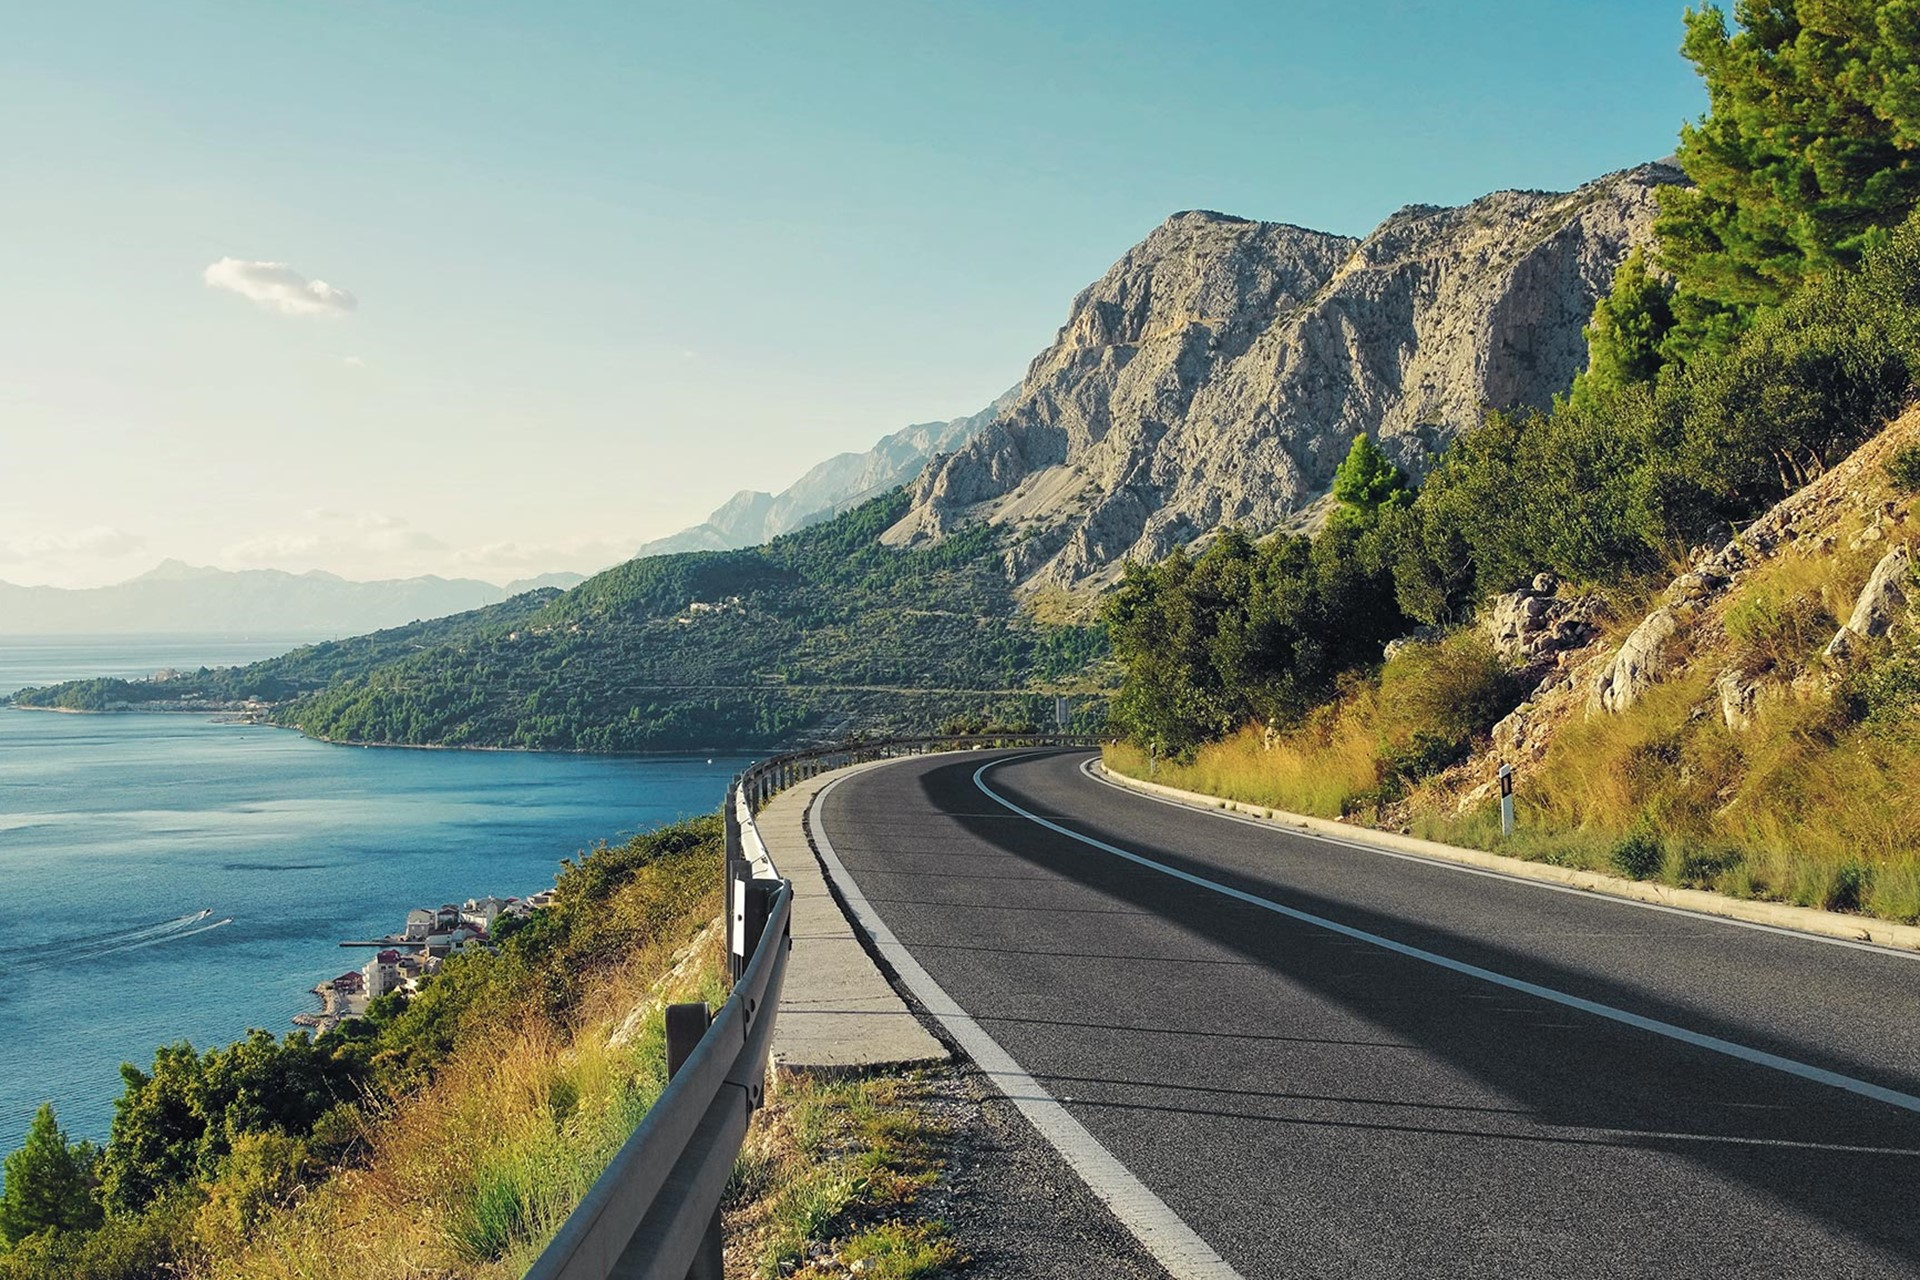 Late Morning: Drive to Dubrovnik - Drive along Croatia's jagged coastline on the Adriatic Highway to get from Split to Dubrovnik.